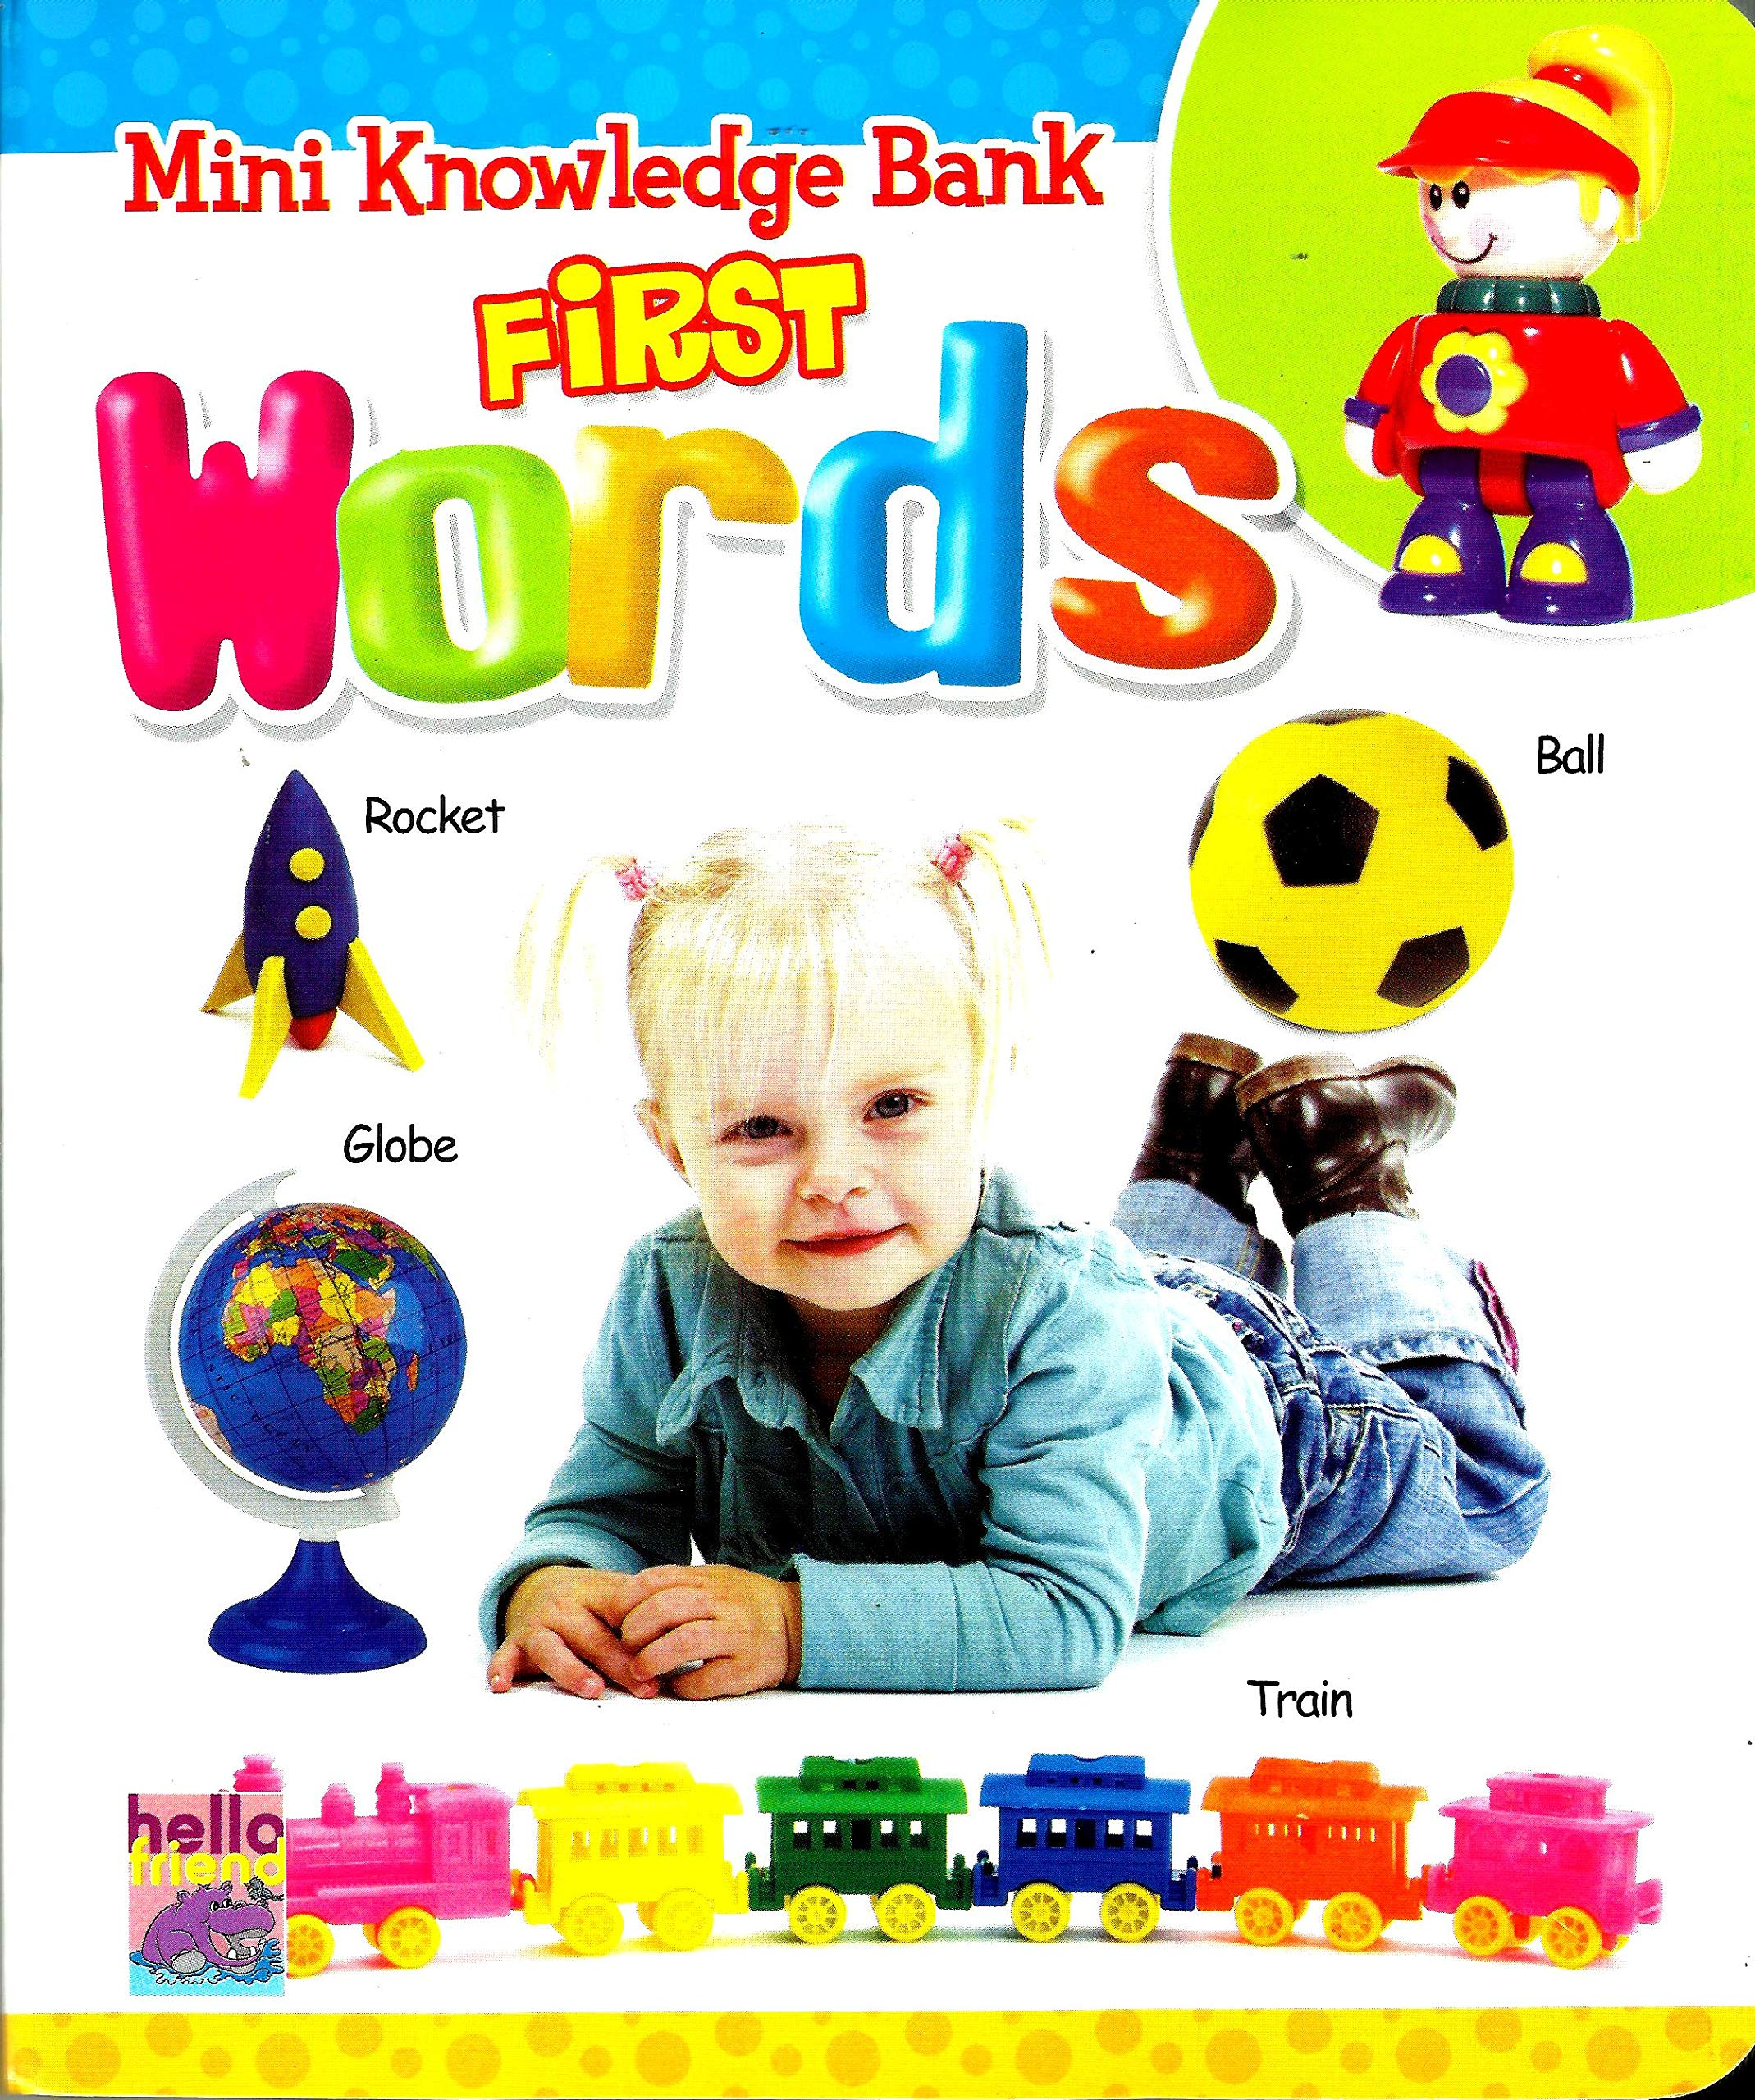 Mini Knowledge Bank First Words